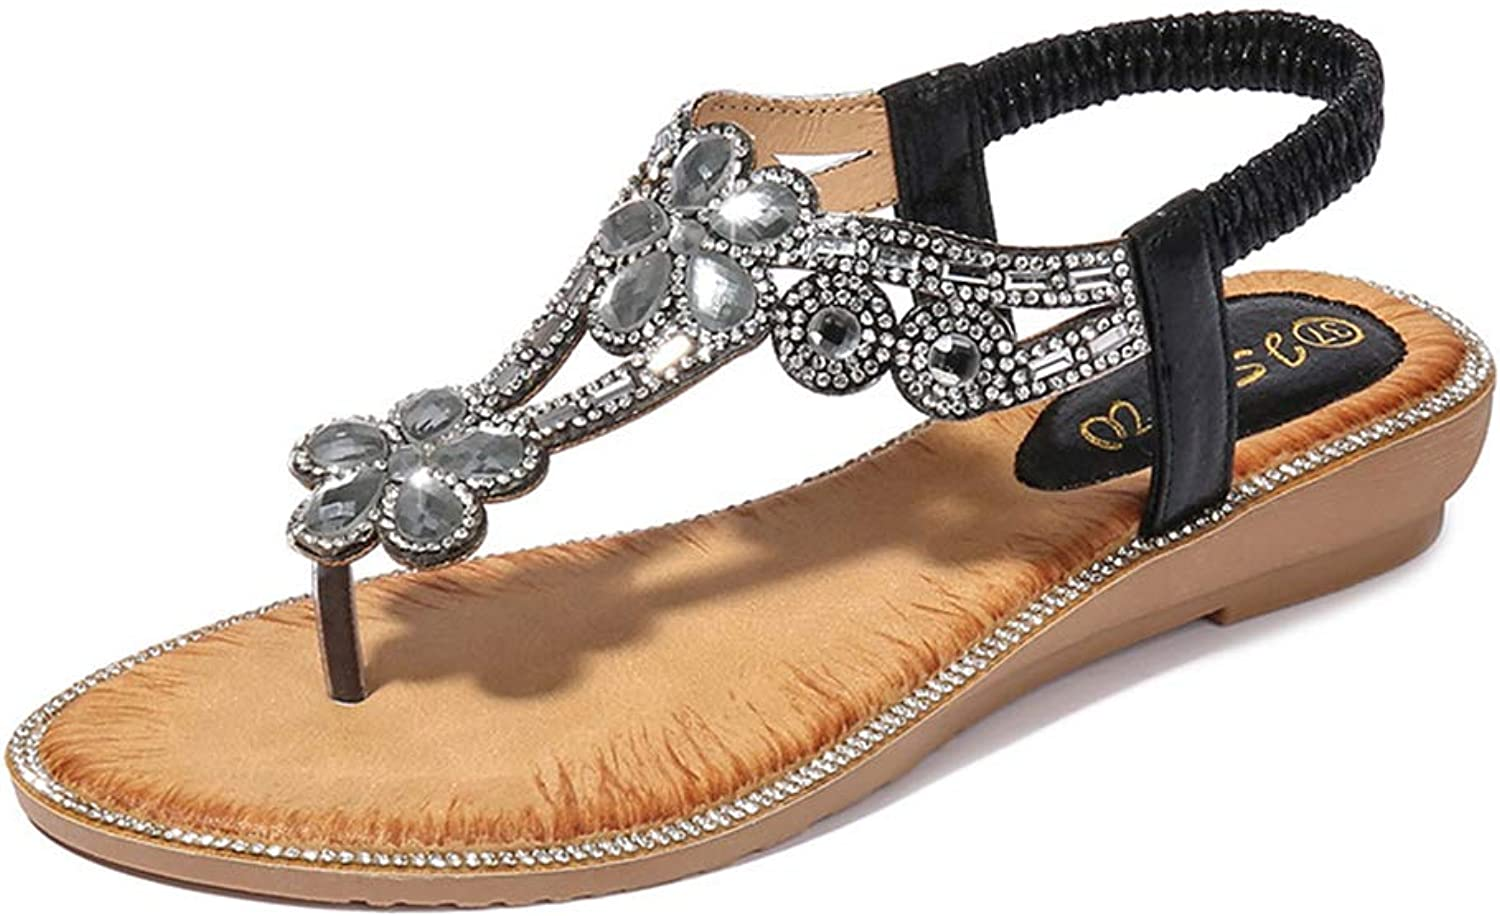 Baviue Women's Outdoor Leather Flowers Beaded Jeweled Thong Sandals